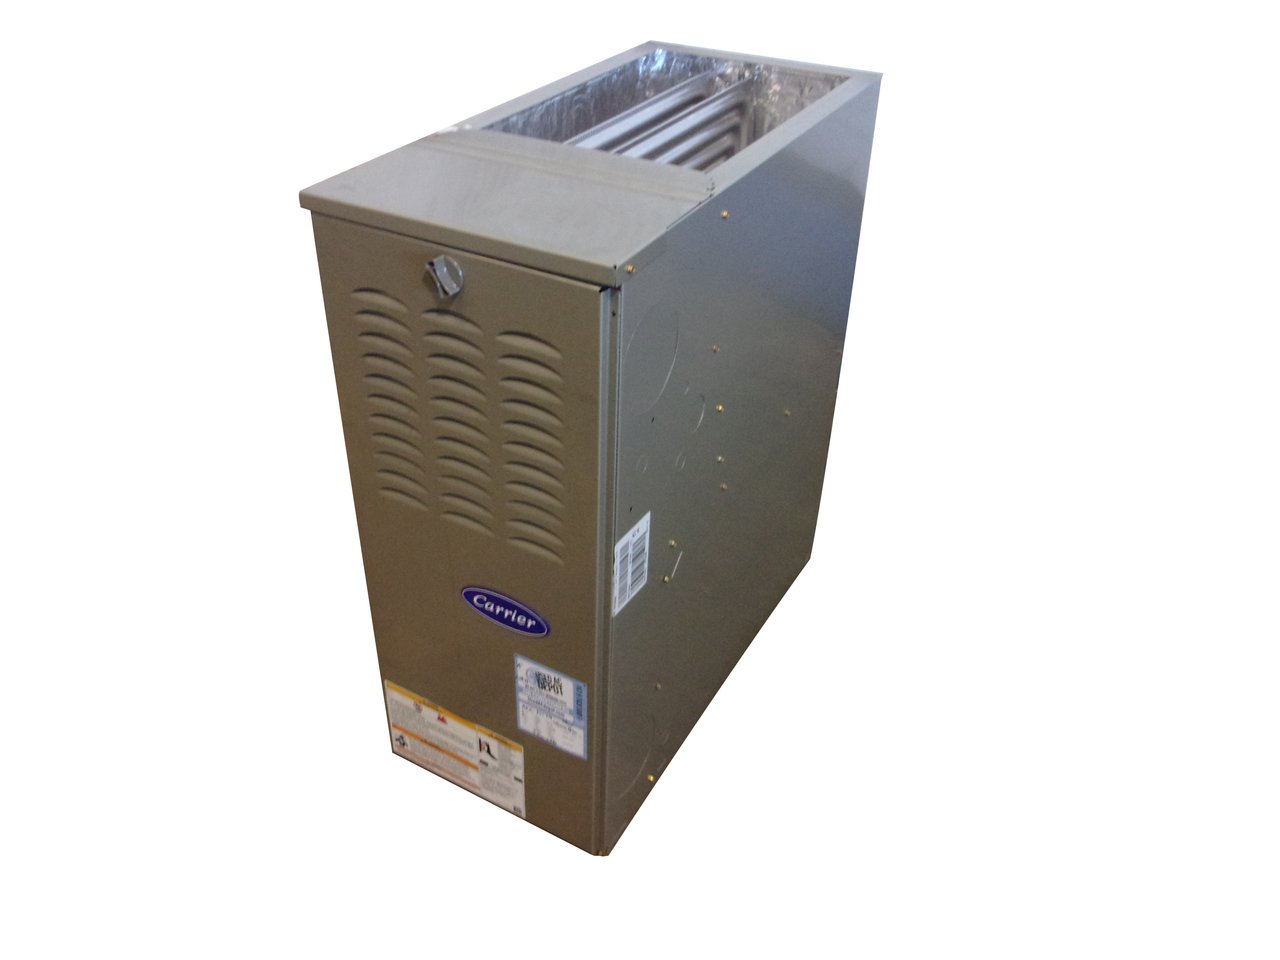 CARRIER ''Scratch & Dent'' Central Air Conditioner Furnace 58STA045-1-12 ACC-10179